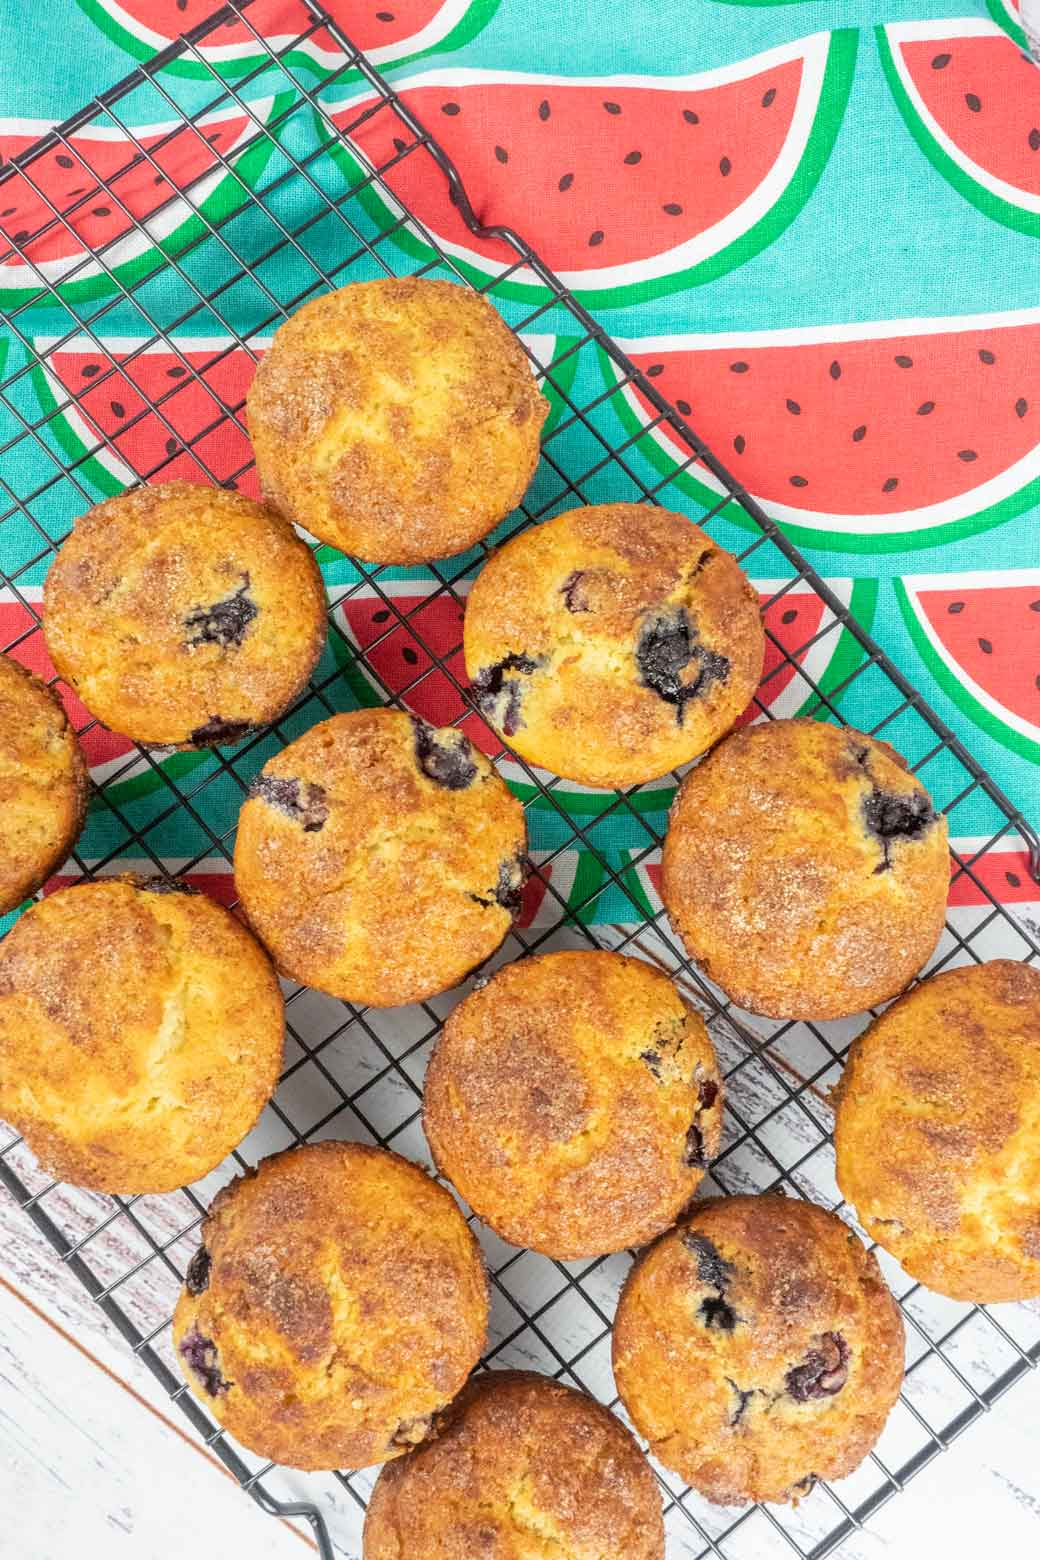 Blueberry muffins with cinnamon crunch on cooling rack